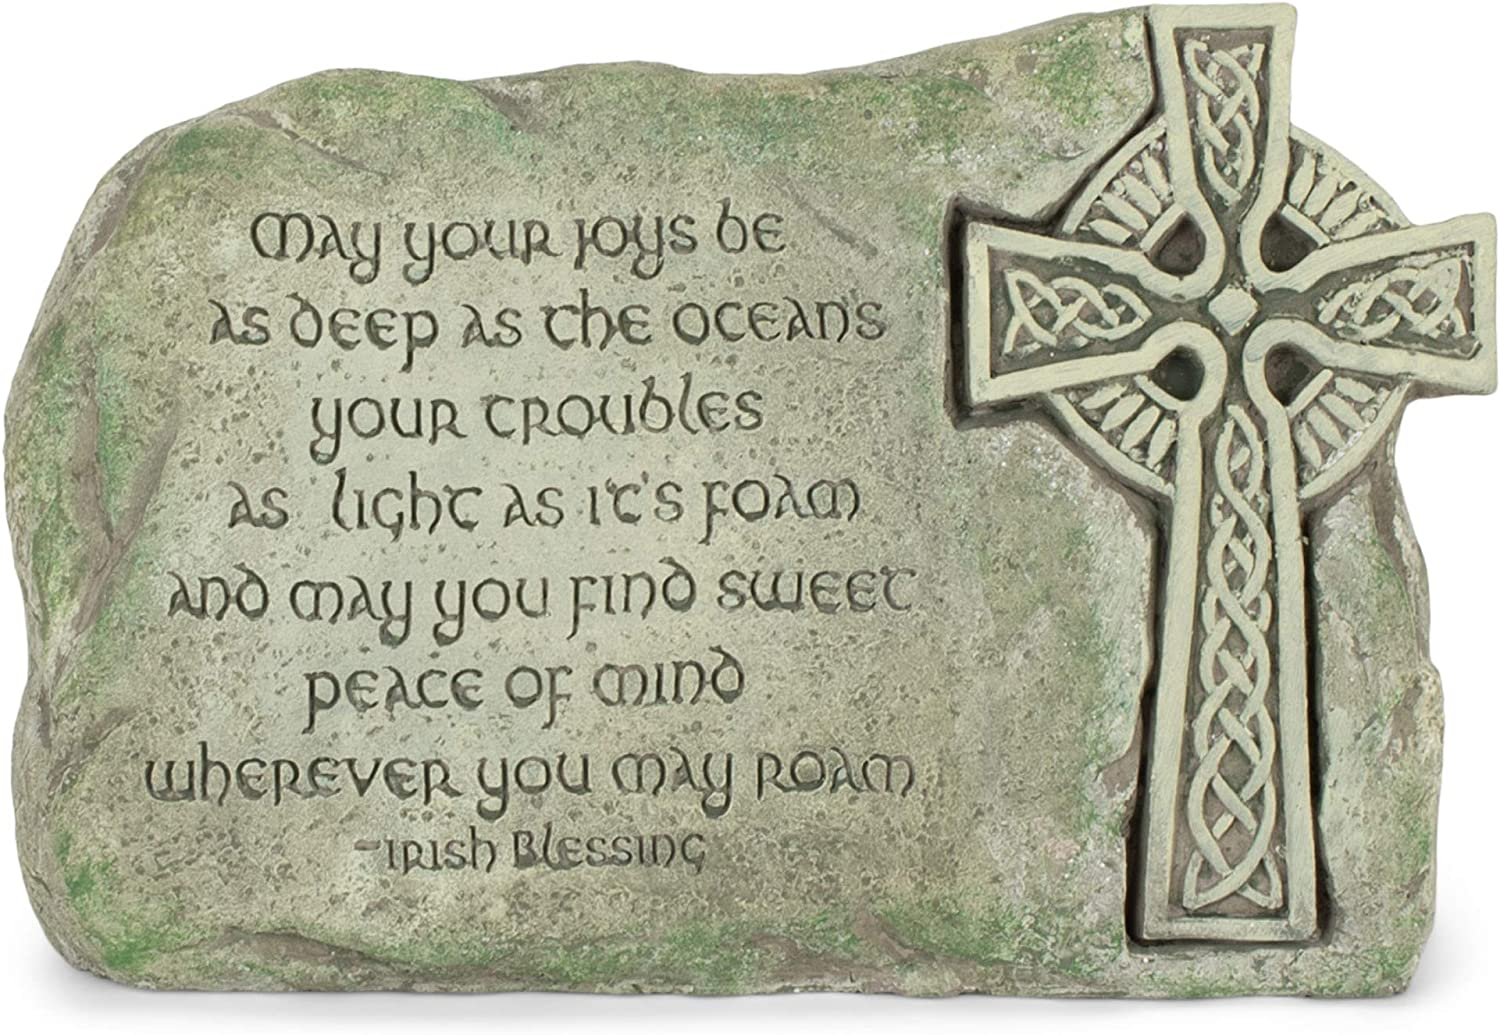 Transpac May Your Joys Be As Deep As Oceans Irish Blessing 10 x 6.5 Cement Decorative Outdoor Garden Stone